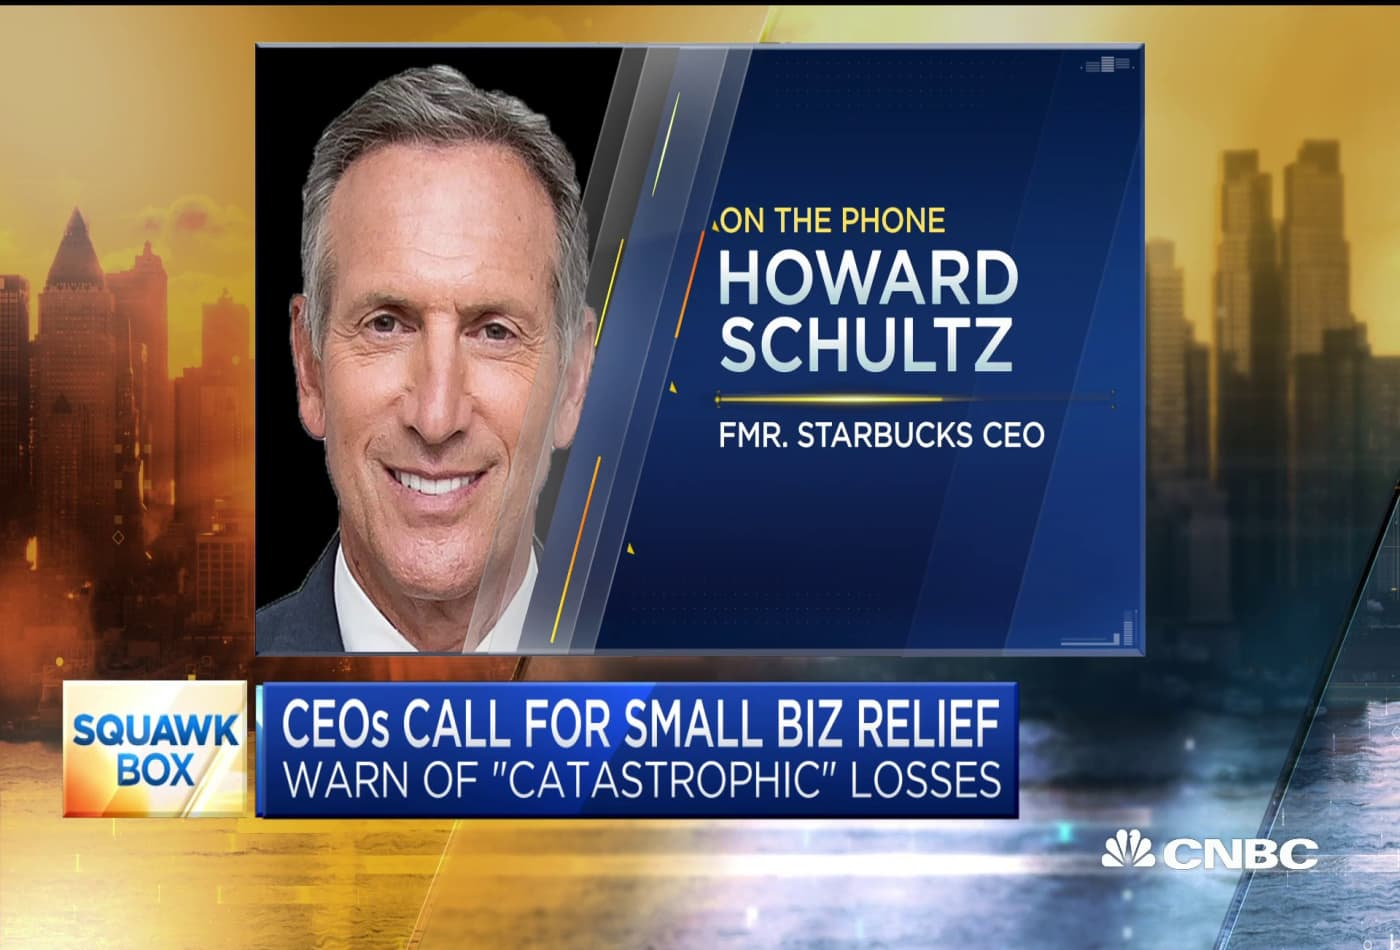 'This is a five alarm emergency' — Former Starbucks CEO Howard Schultz calls for more small business relief